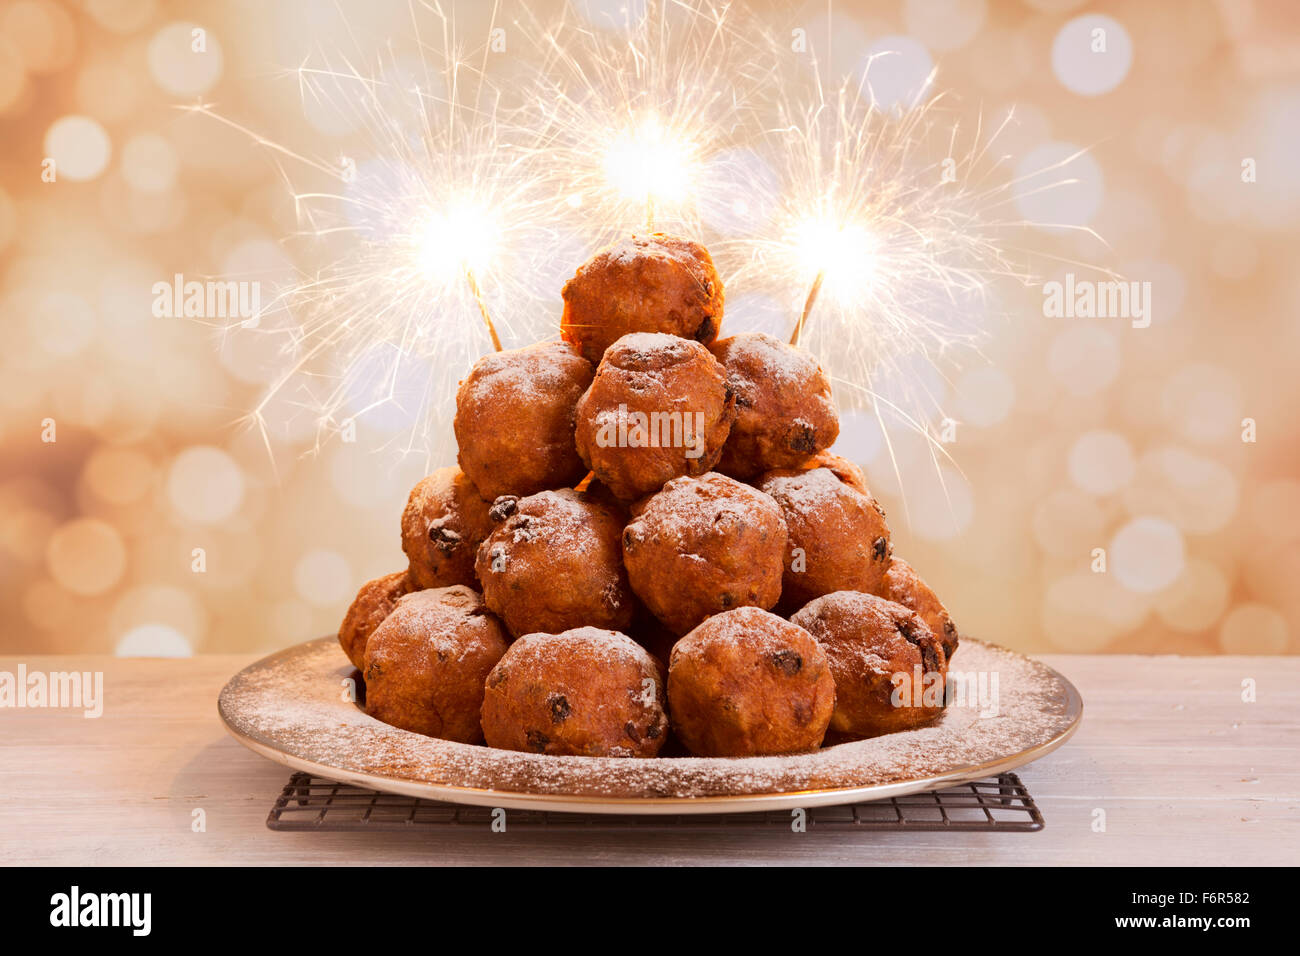 'Oliebollen', traditional Dutch pastry for New Year's Eve. - Stock Image